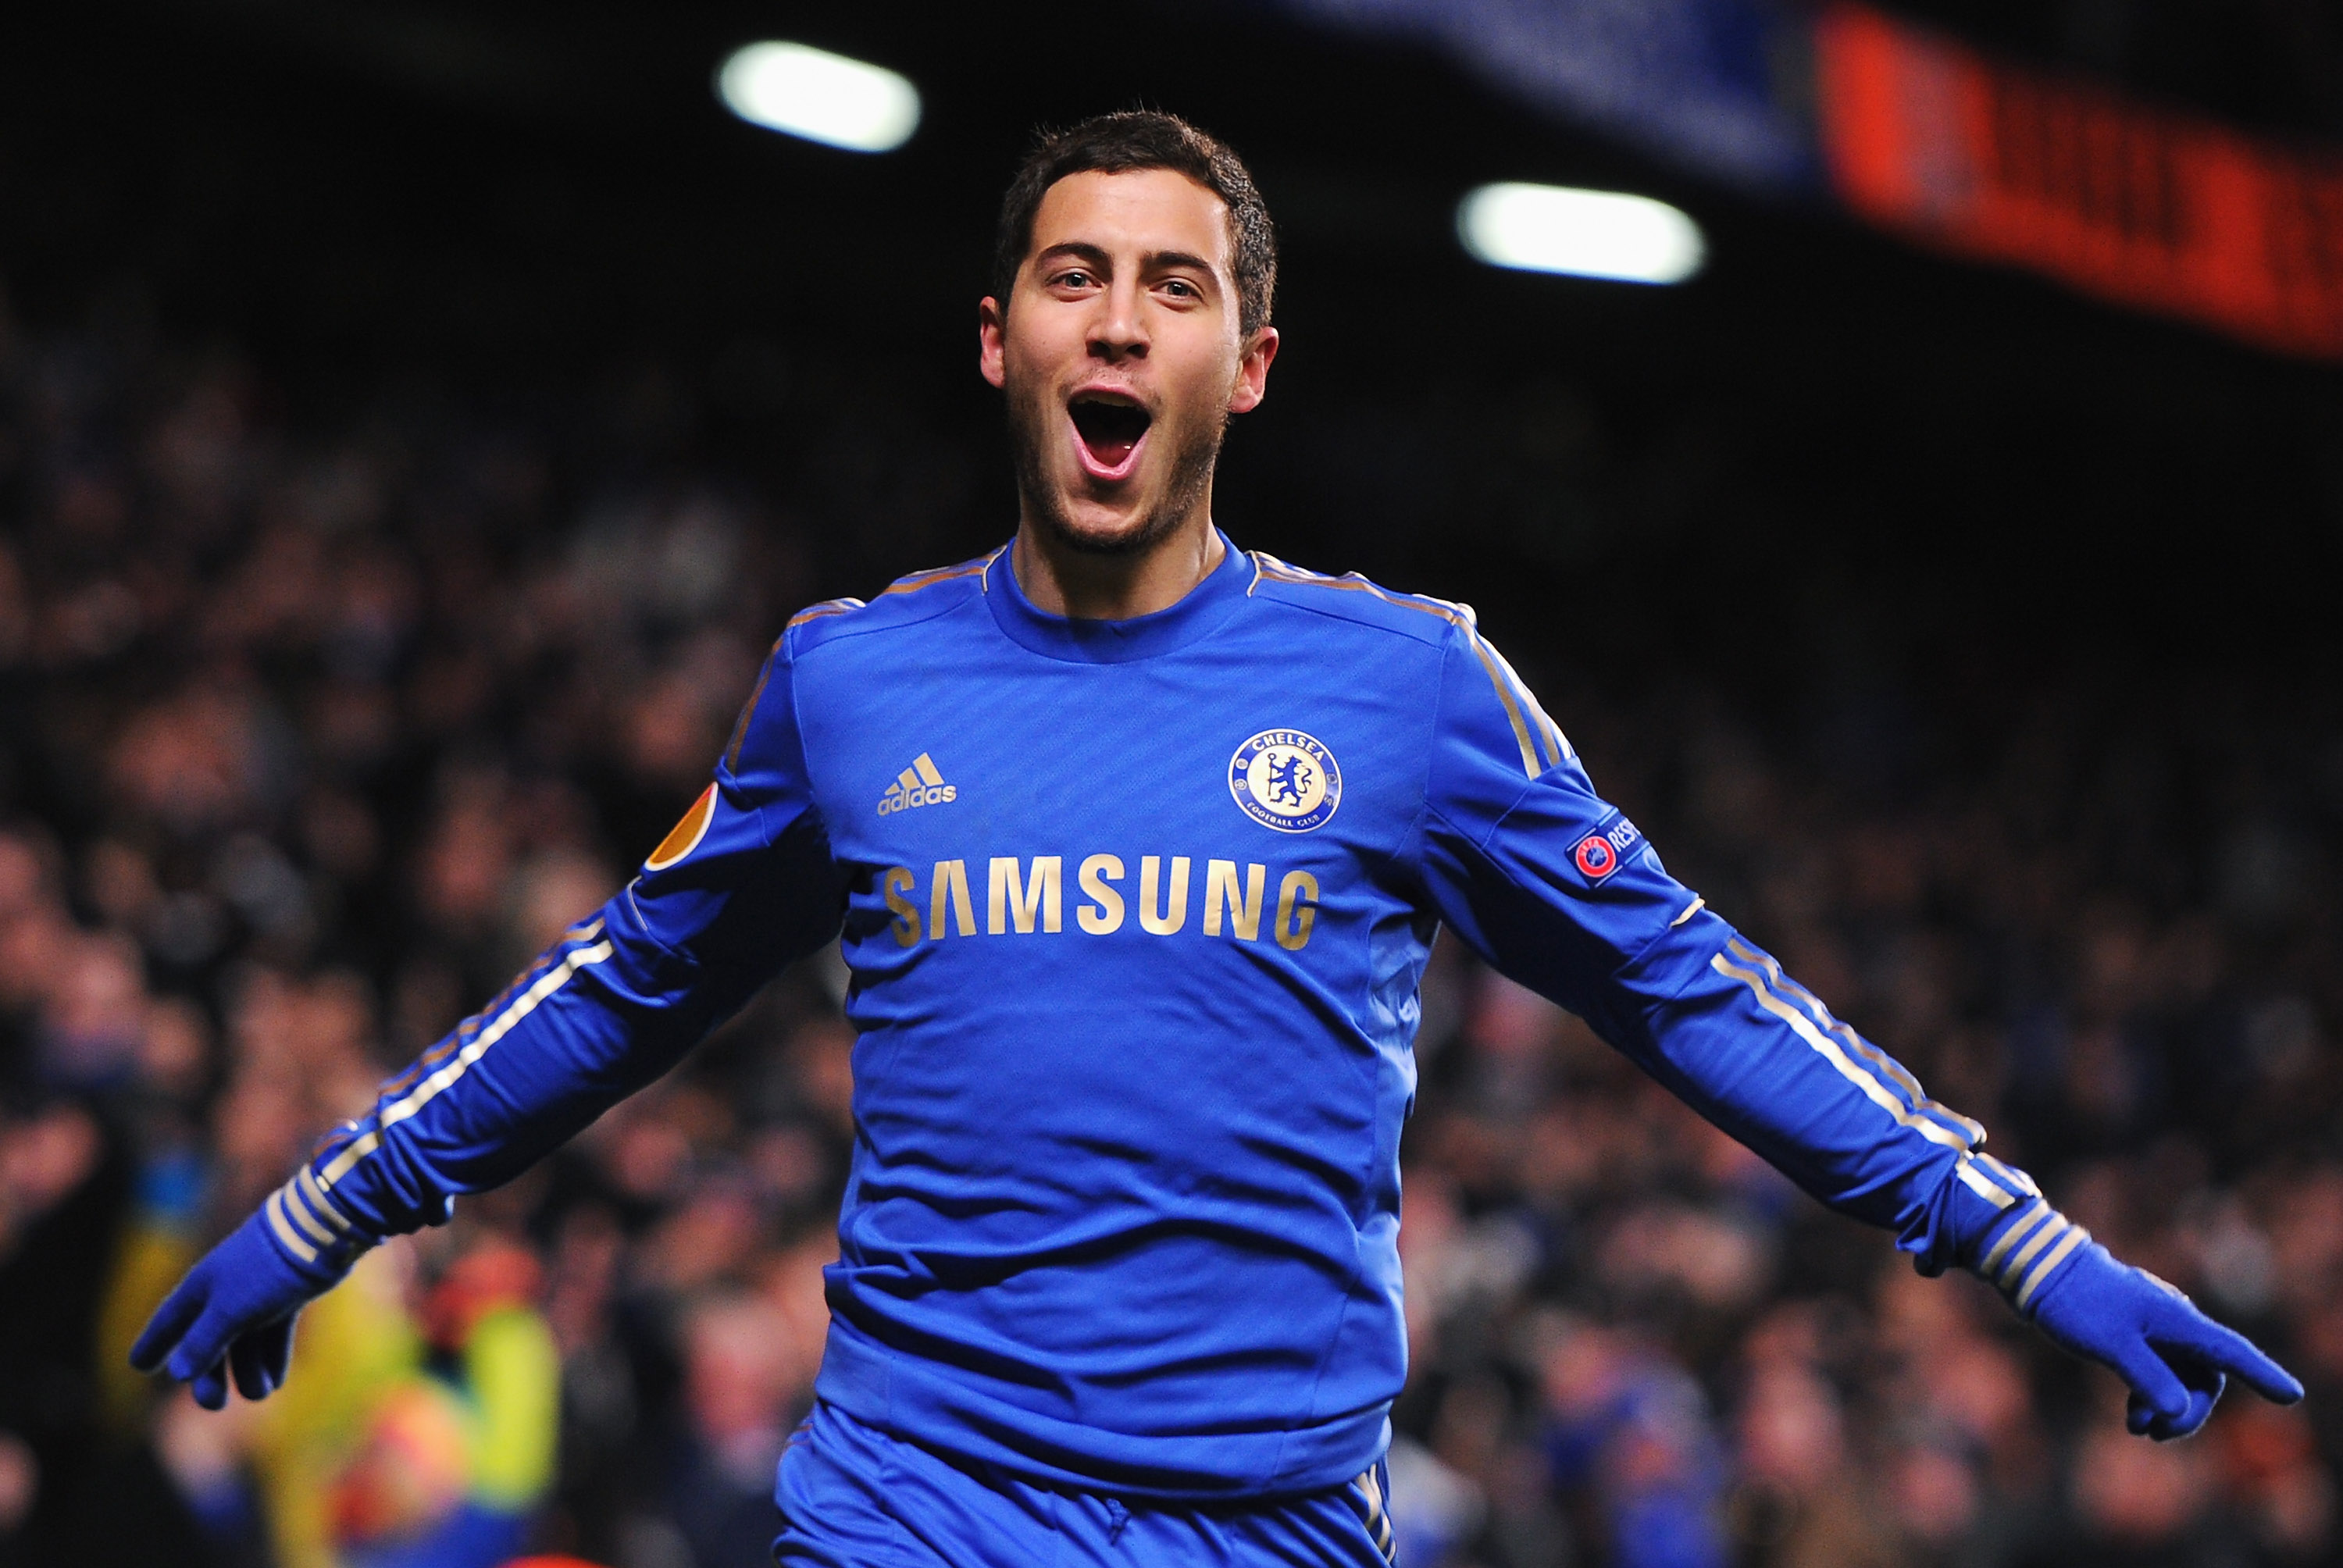 Eden Hazard: I'll score 60 goals next season under 'mystical' Jose Mourinho